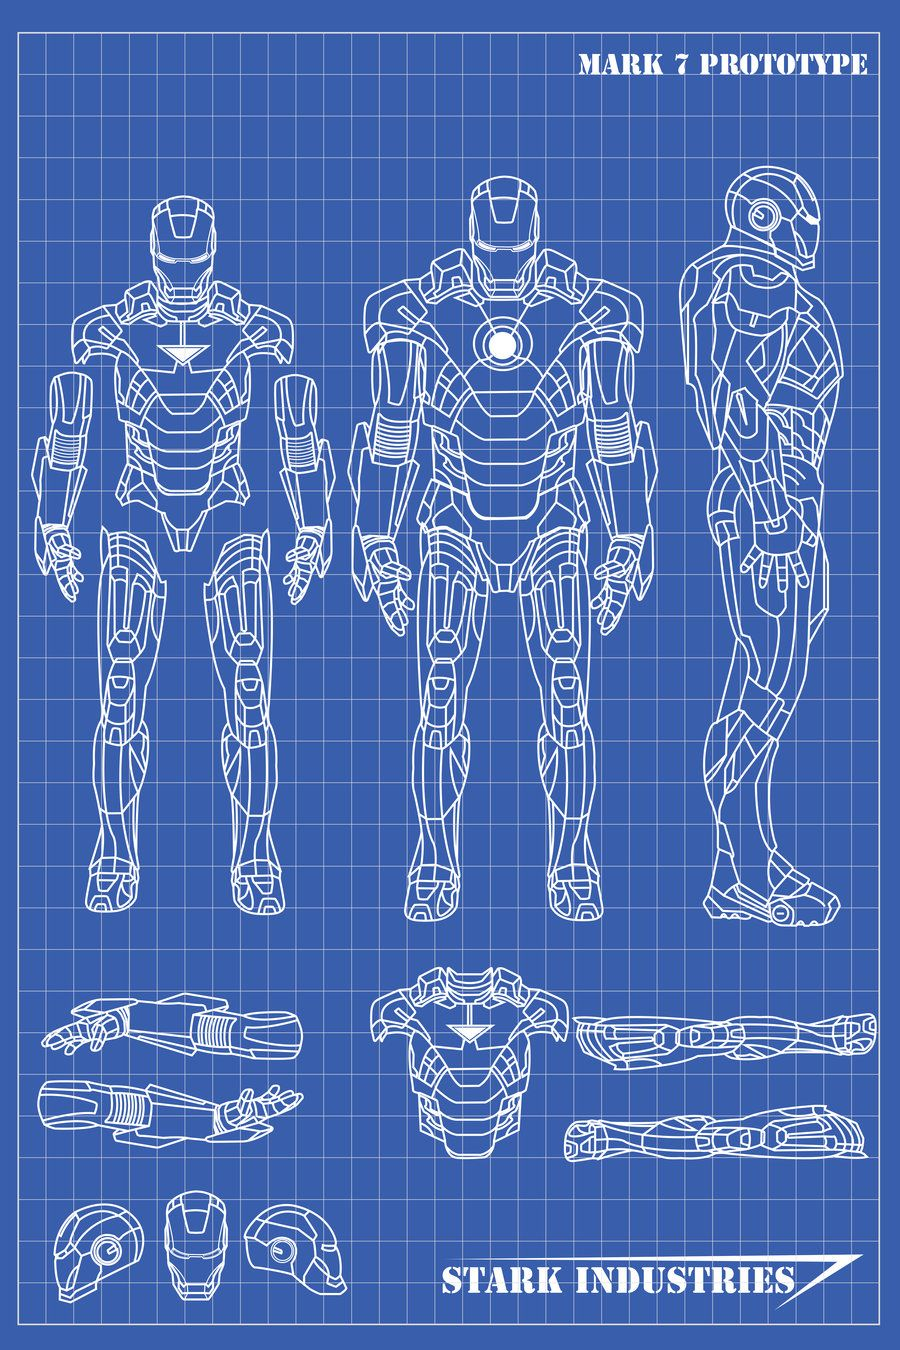 Iron man blueprints by nickgonzales7 on deviantart movie art iron man blueprints by nickgonzales7 on deviantart malvernweather Images